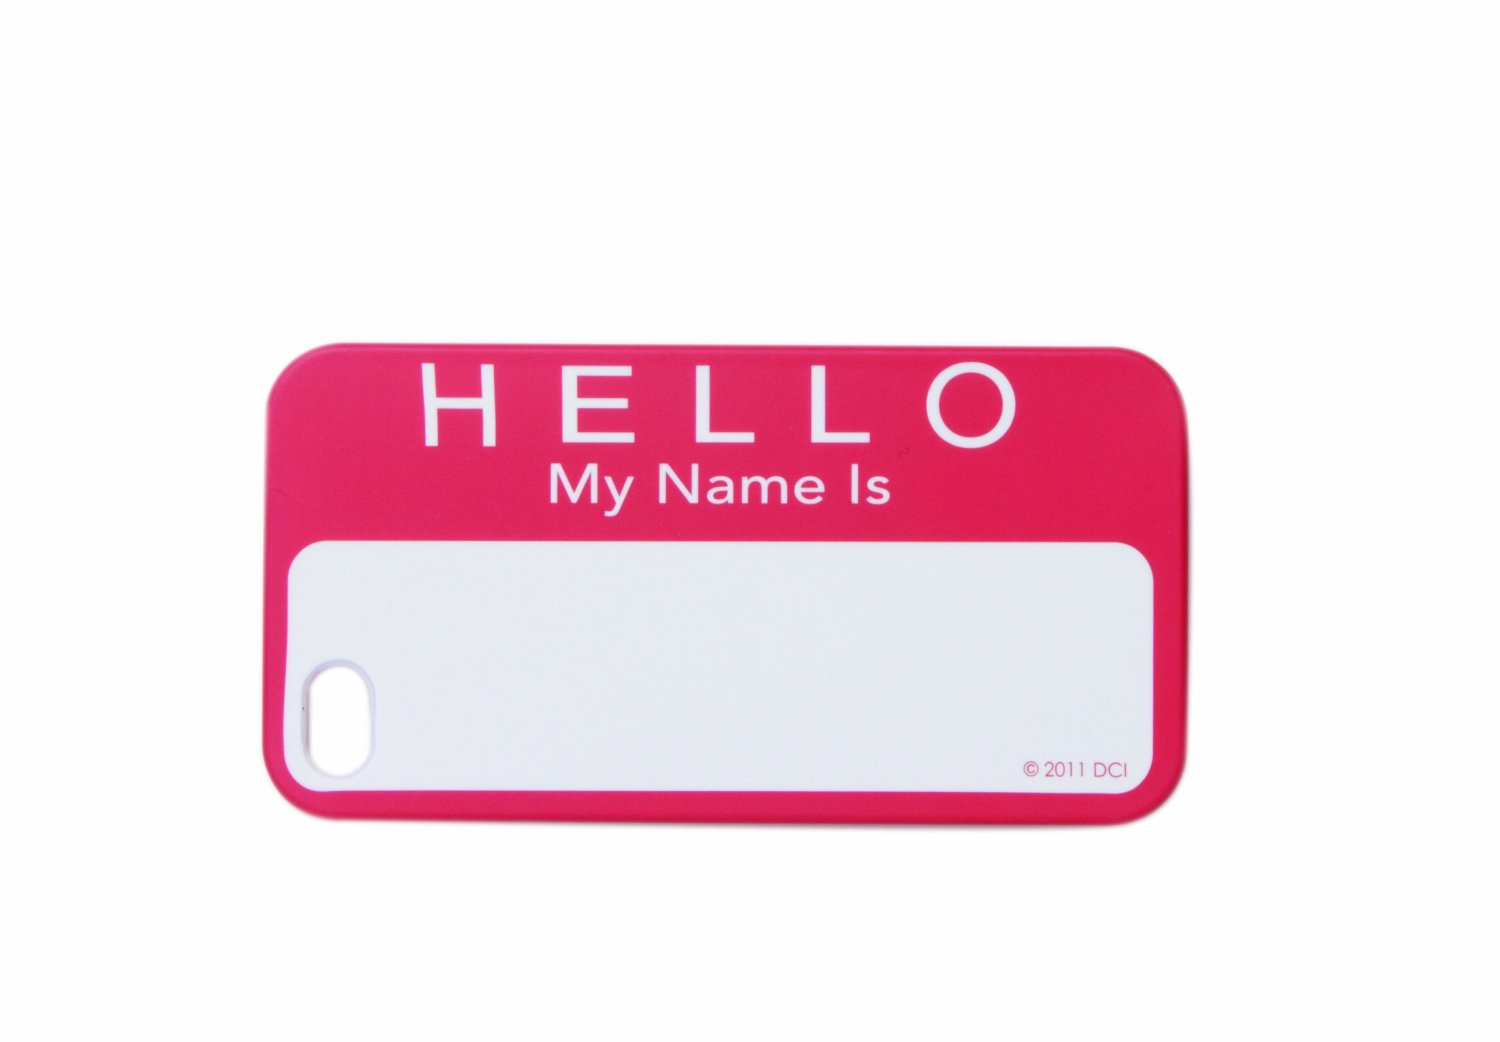 Amazon.com: DCI 30468 Hello My Name Is Flash Hard Shell Cover for iPhone 4/4S - Retail Packaging - Red/White: Cell Phones & Accessories